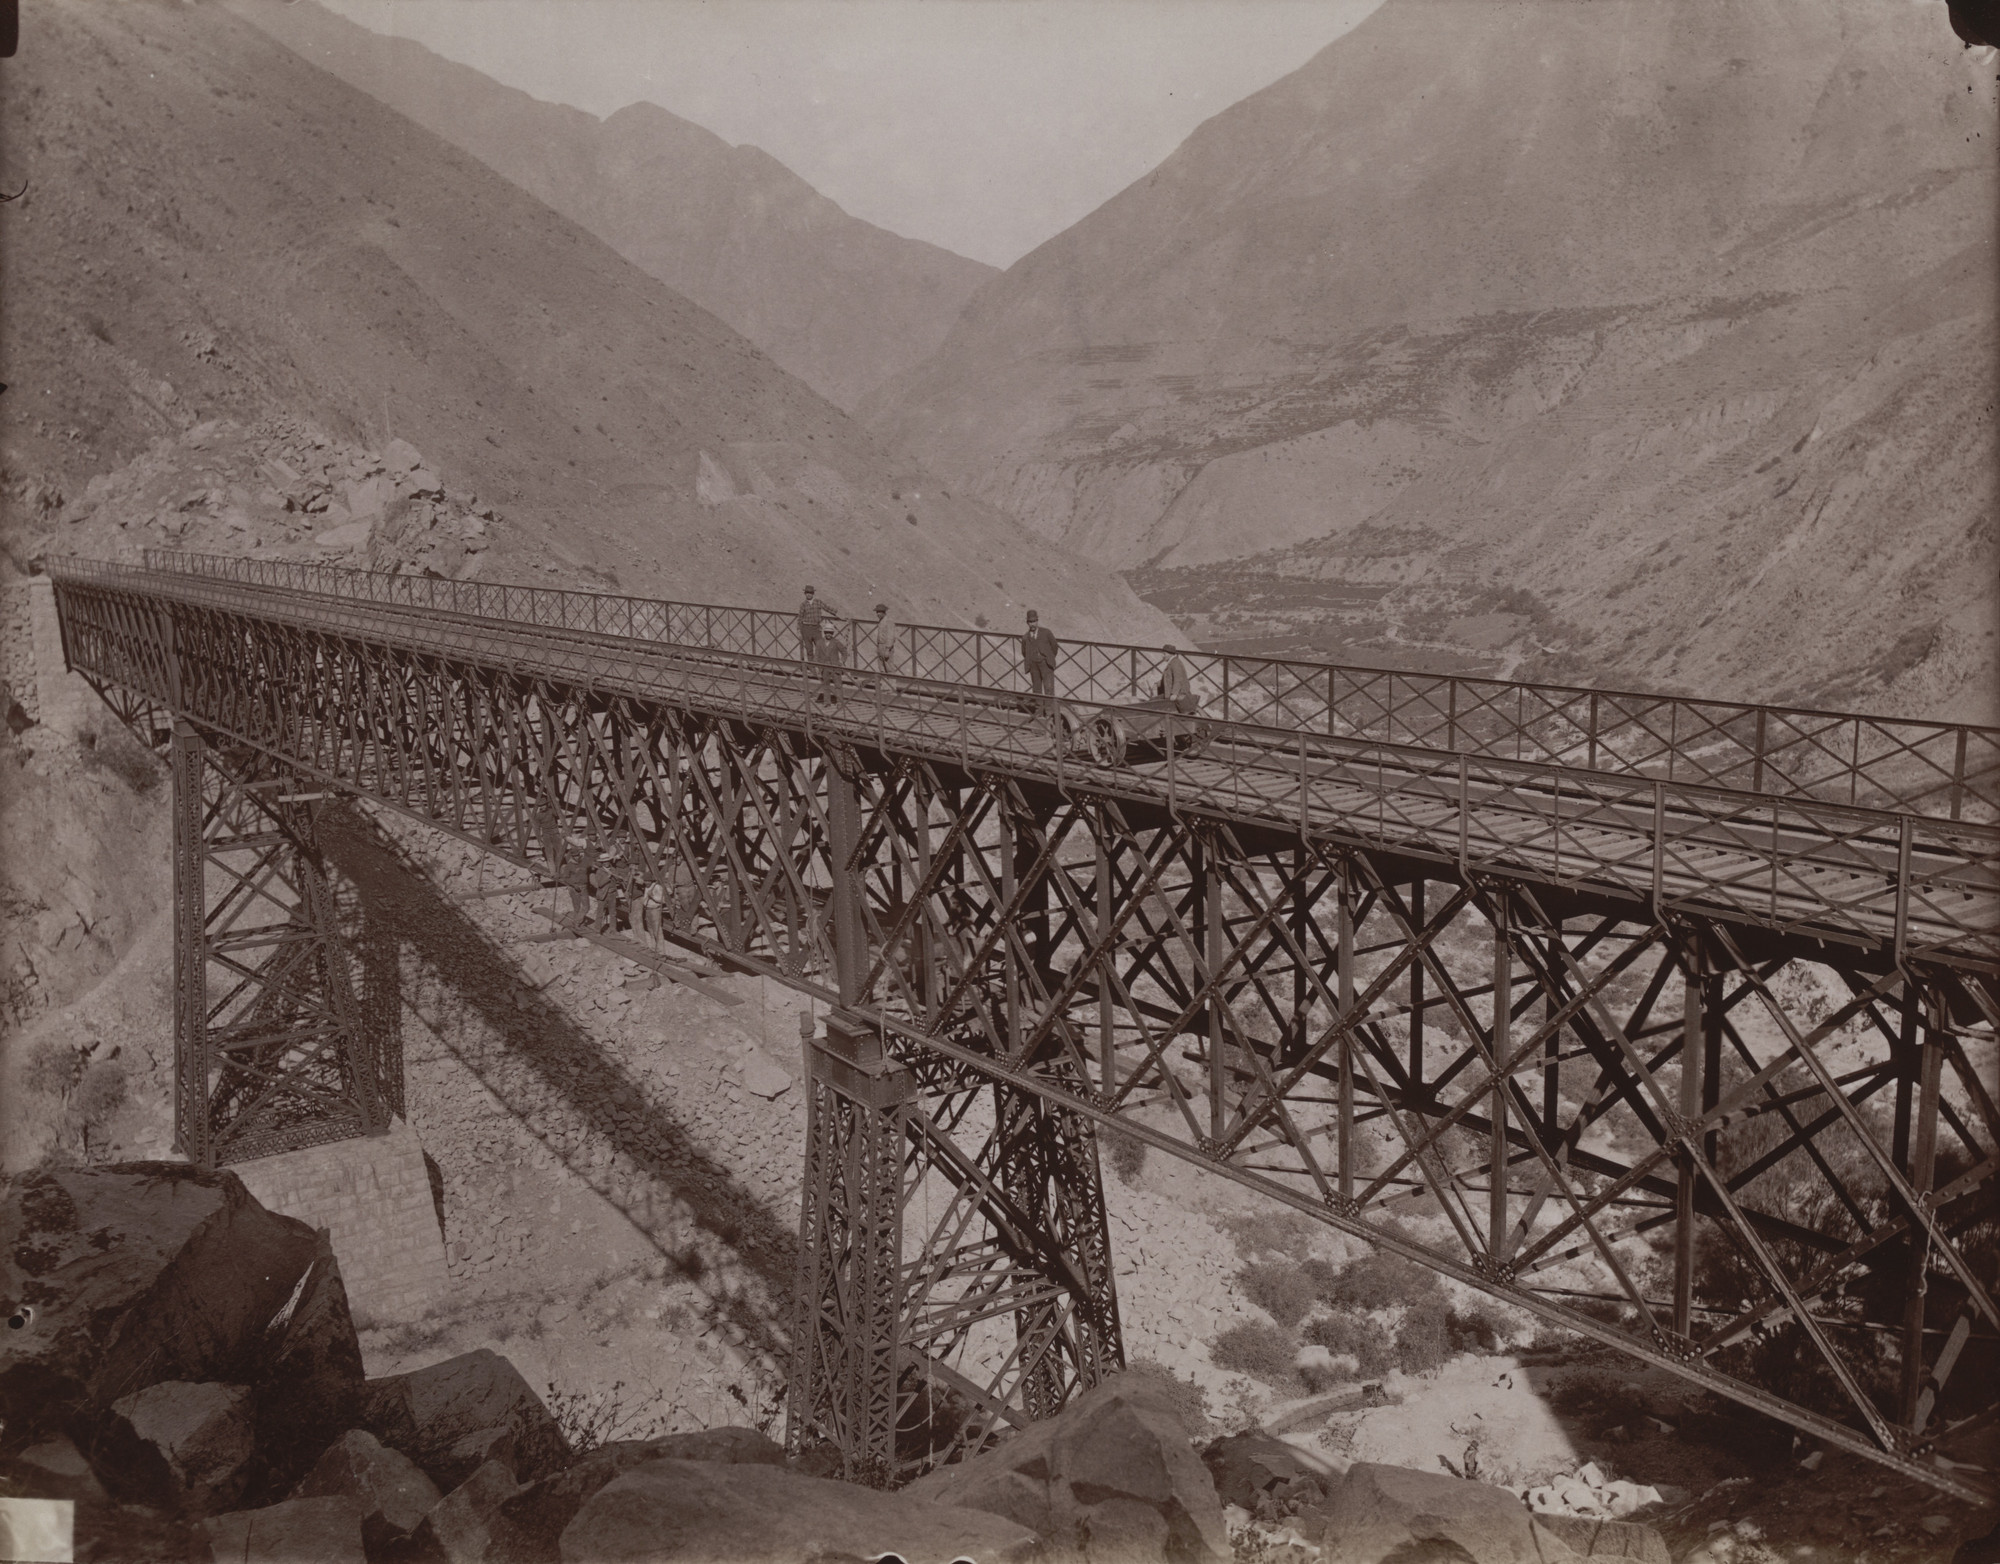 Unknown photographer. Railroad Bridge, Peru. c. 1880